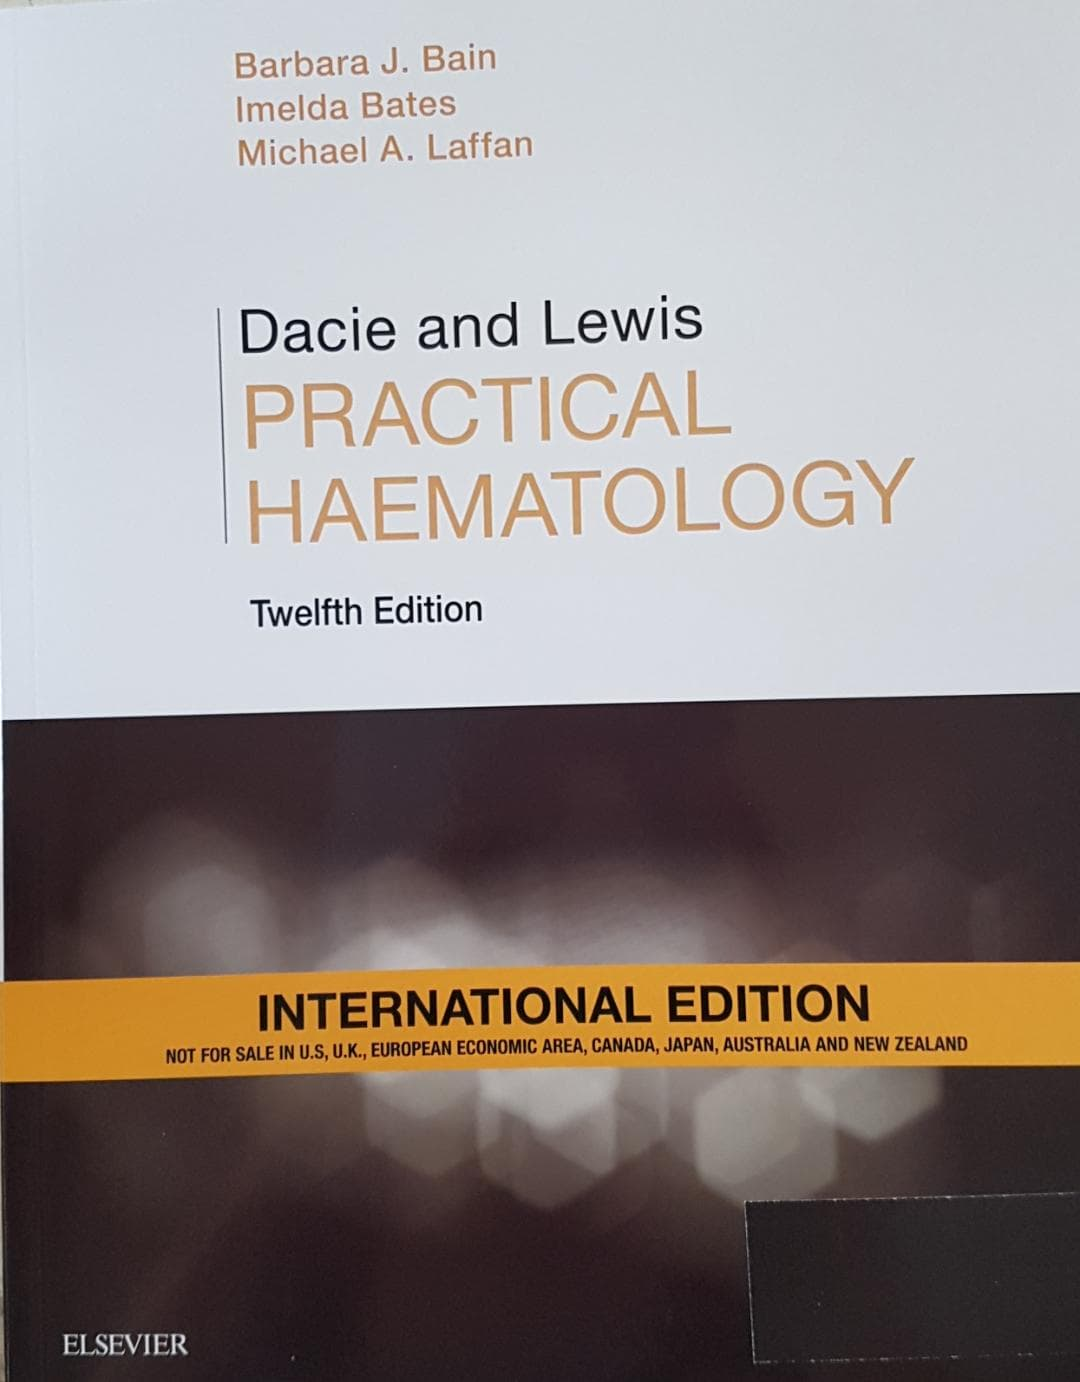 [ORIGINAL] Dacie and Lewis Practical Haematology 12e - Barbara J.Bain